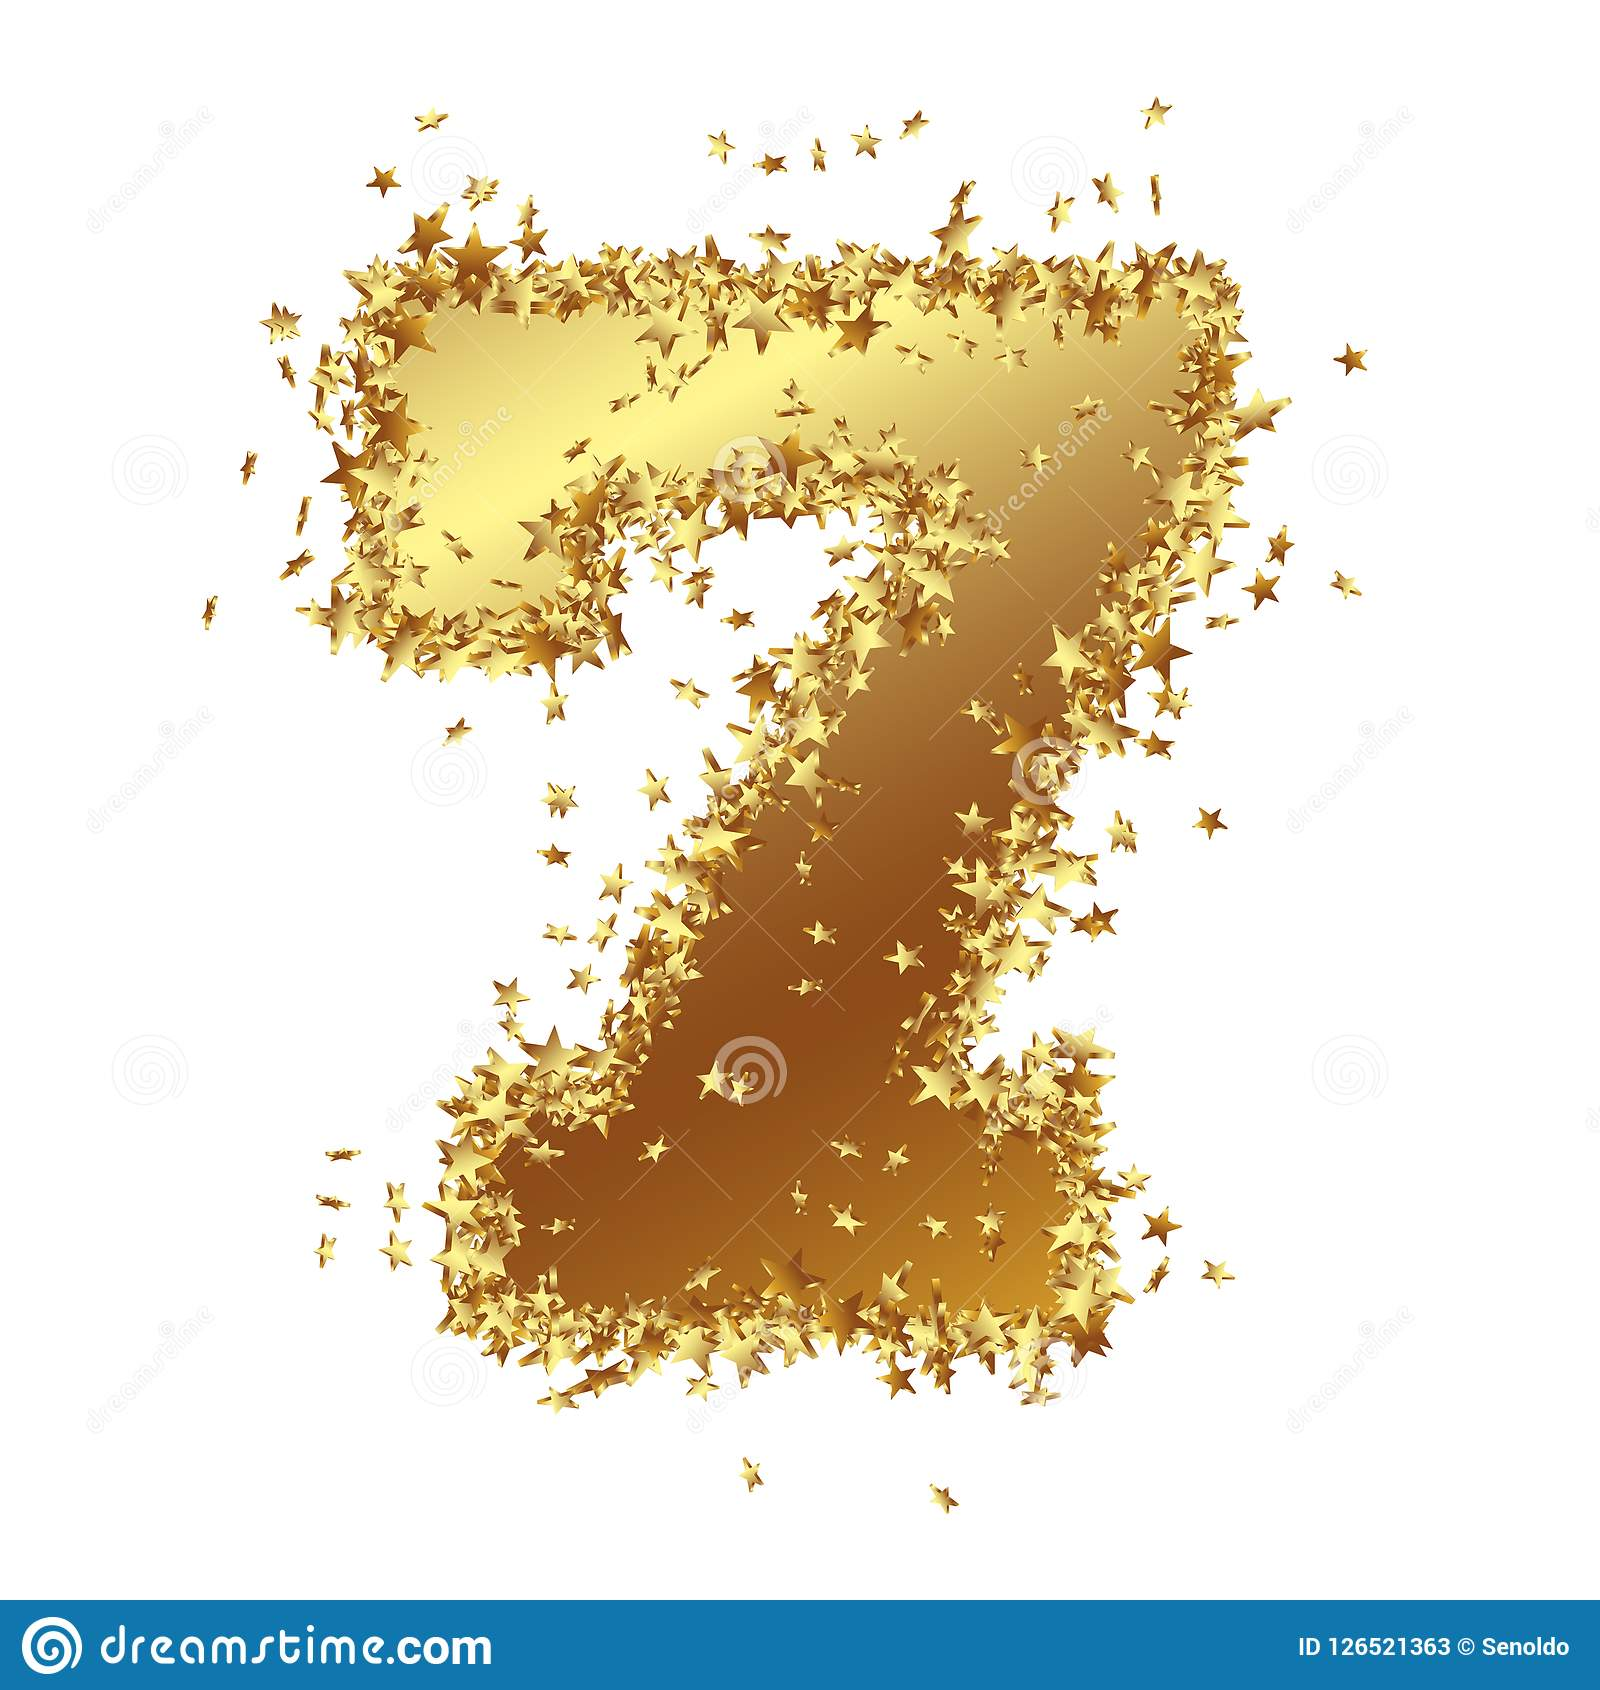 Abstract Golden Number with Starlet Border - Seven - 7